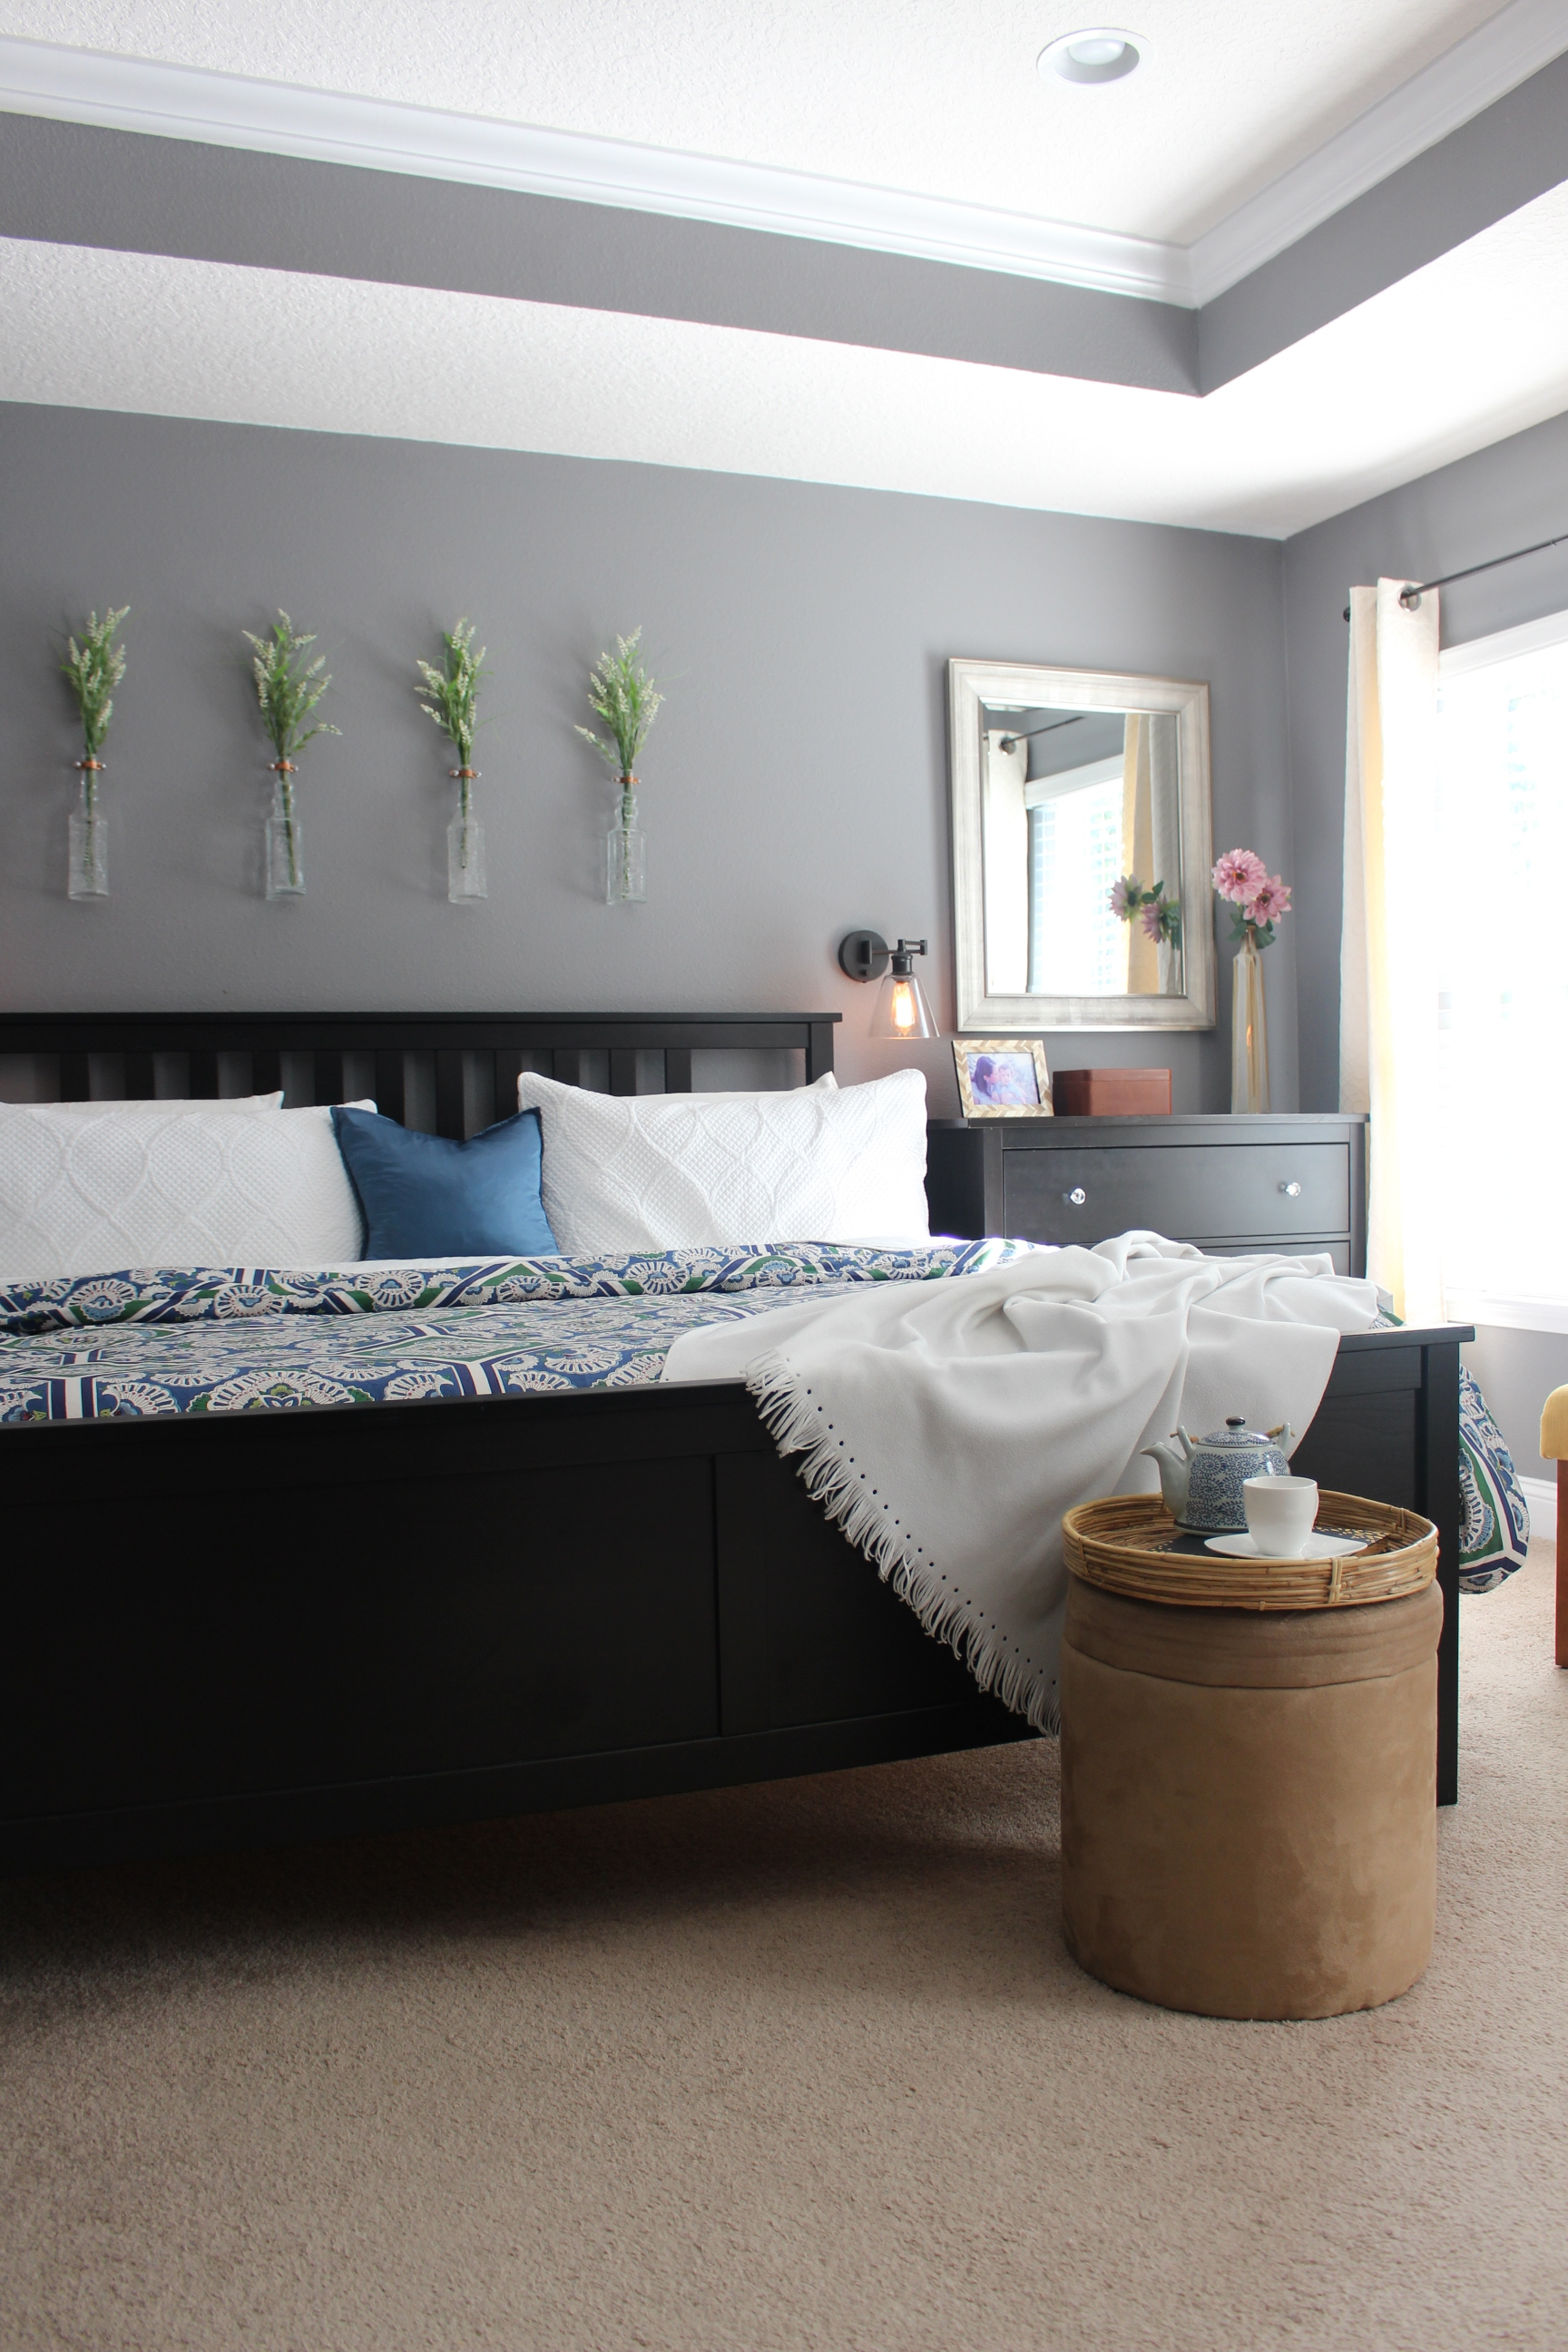 Creating a cozy bedroom with color.